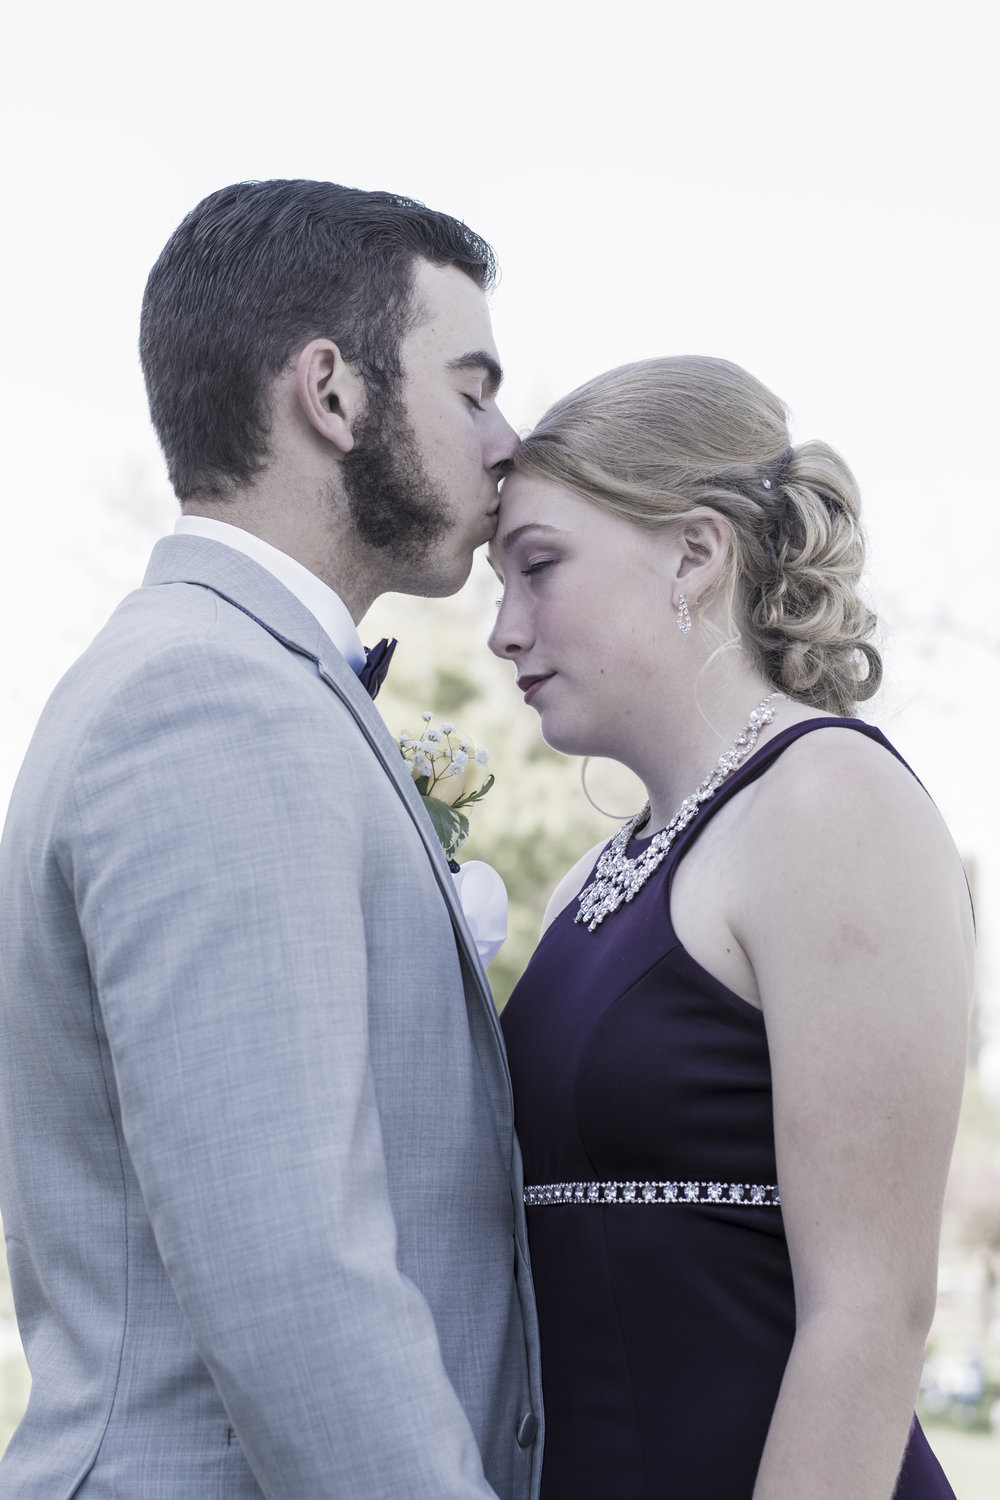 ethan-and-ally-prom-26-of-113_41216940474_o.jpg